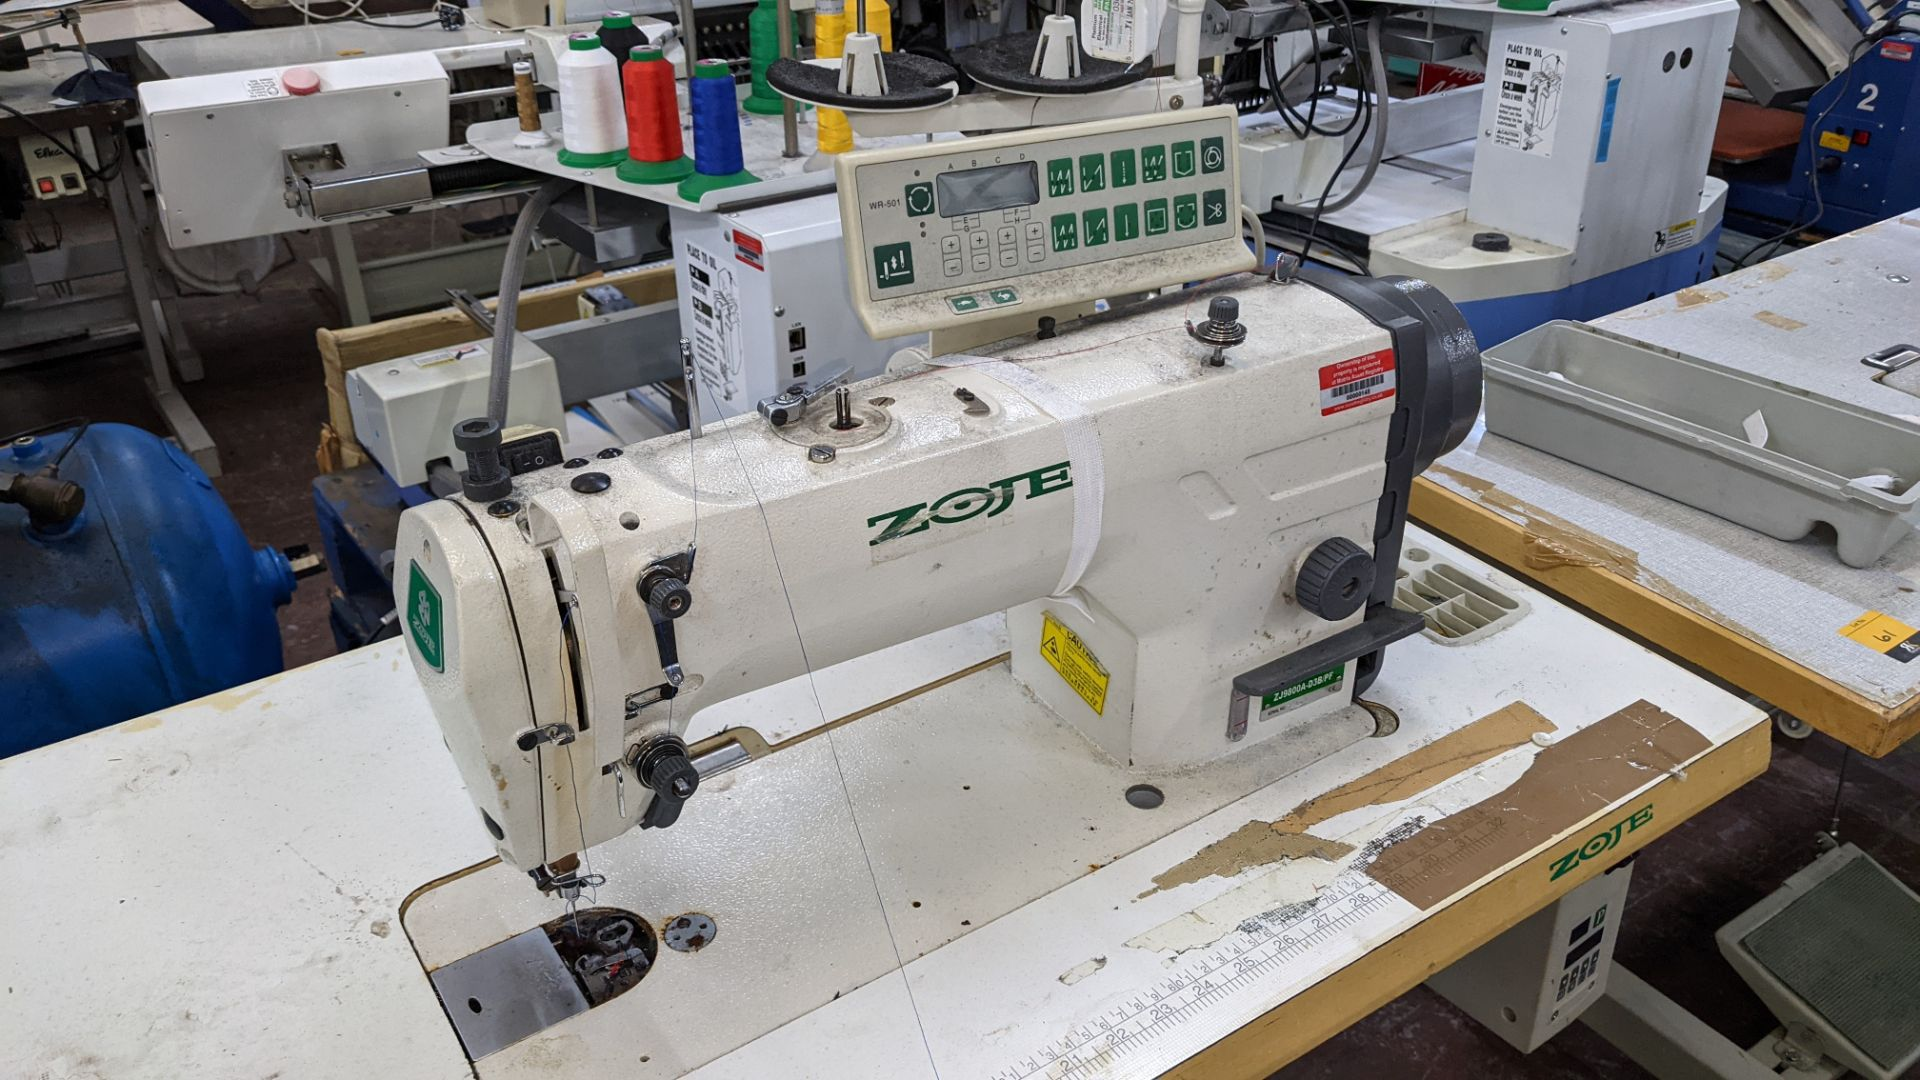 Zoje model ZJ9800A-D3B/PF sewing machine with WR-501 controller - Image 7 of 16